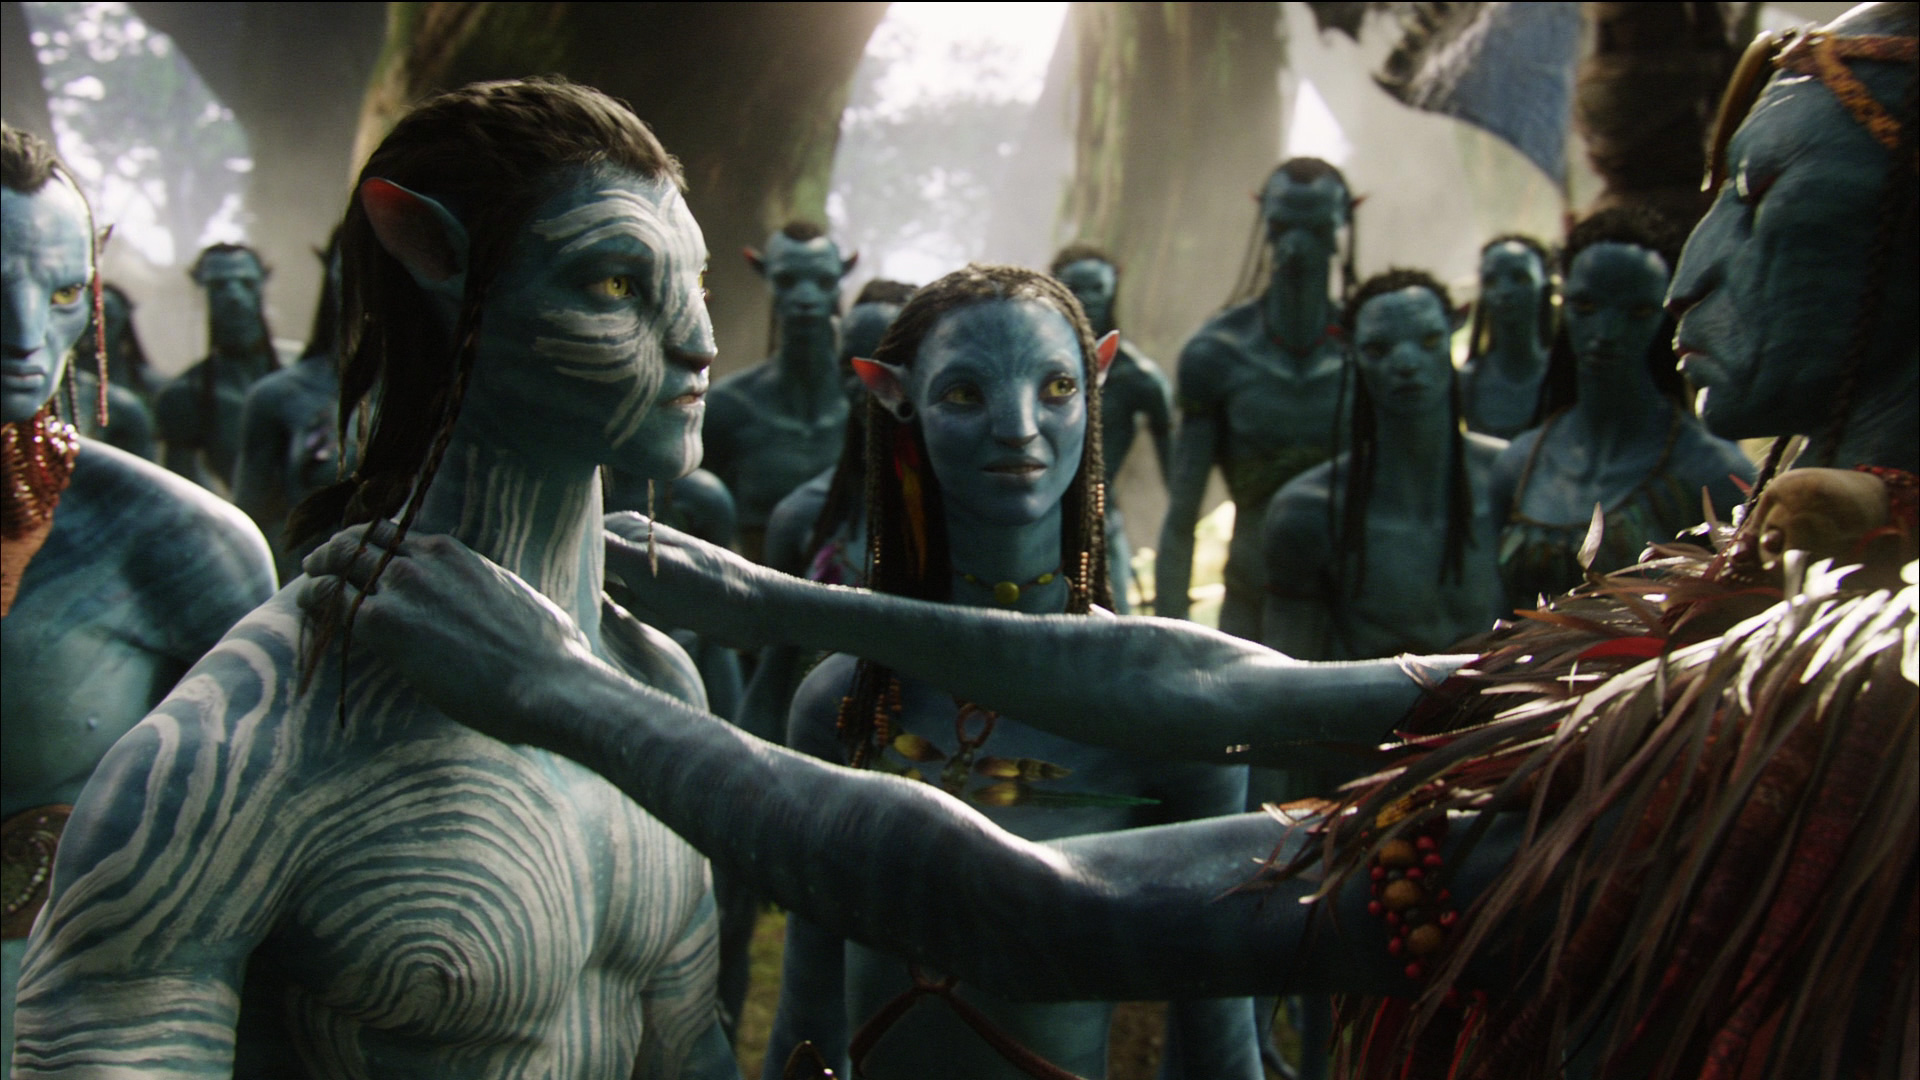 James Cameron Explains Why The Na'vi Have Breasts